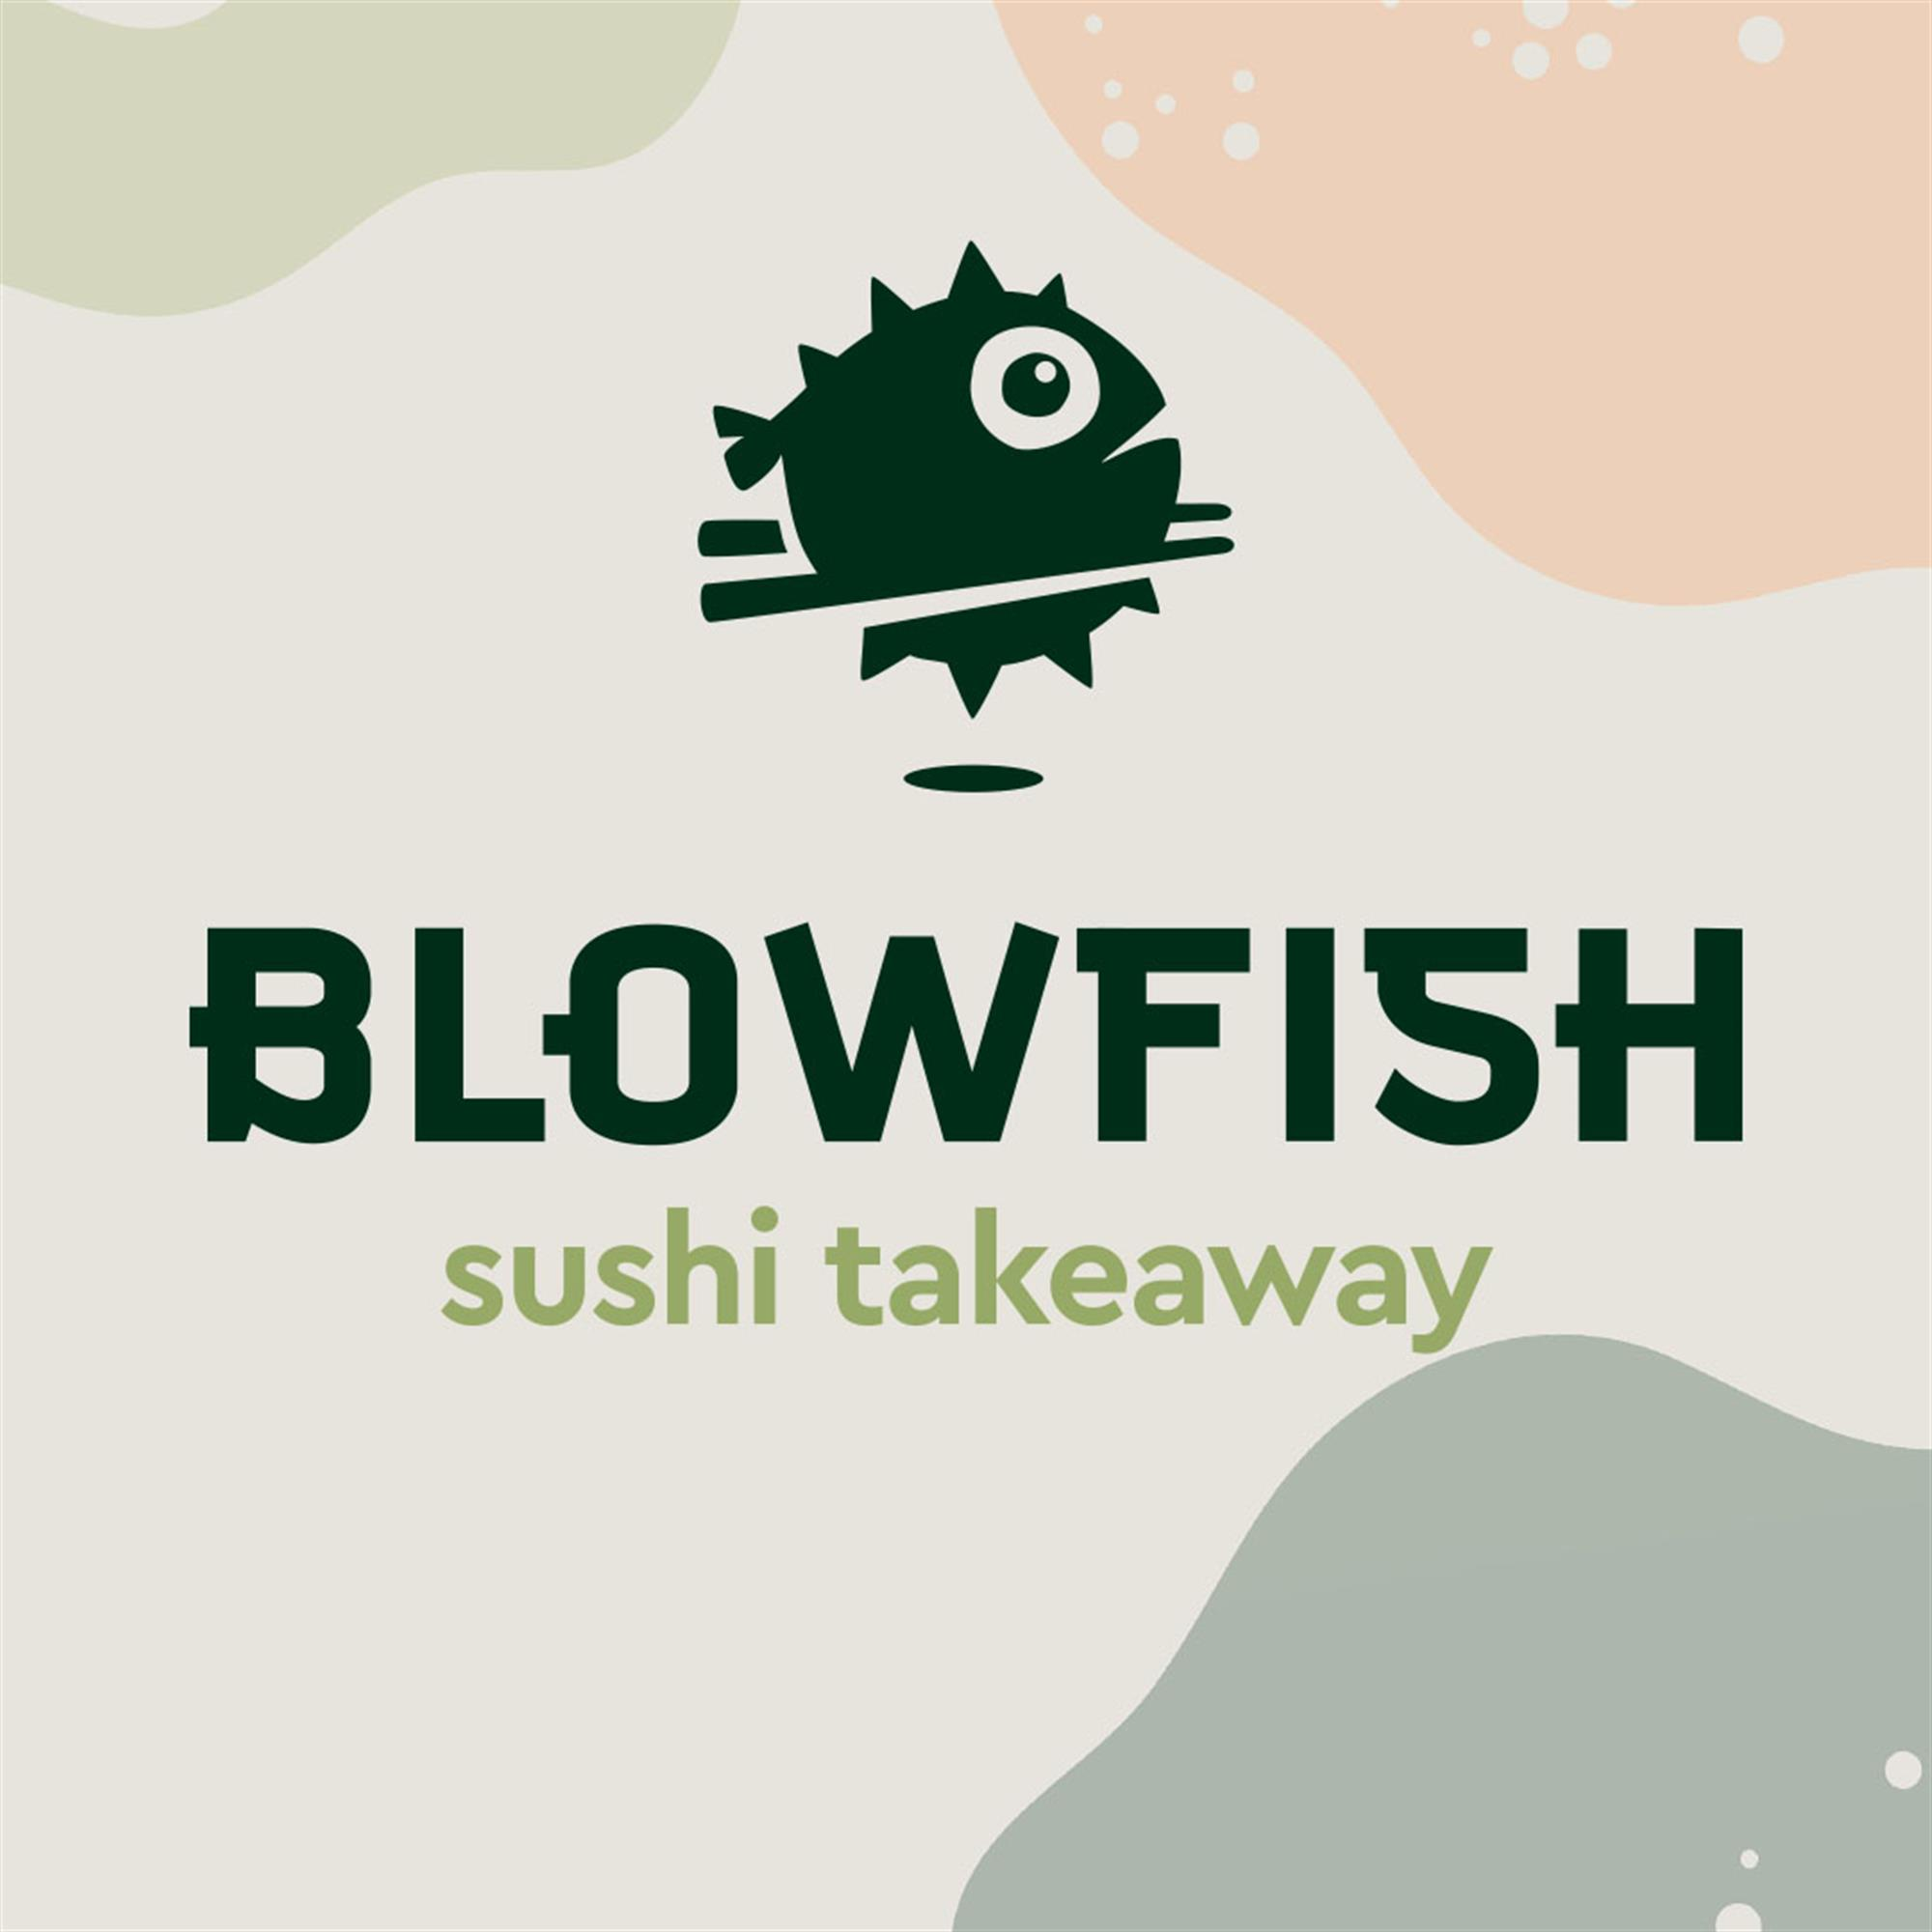 Blowfish sushi